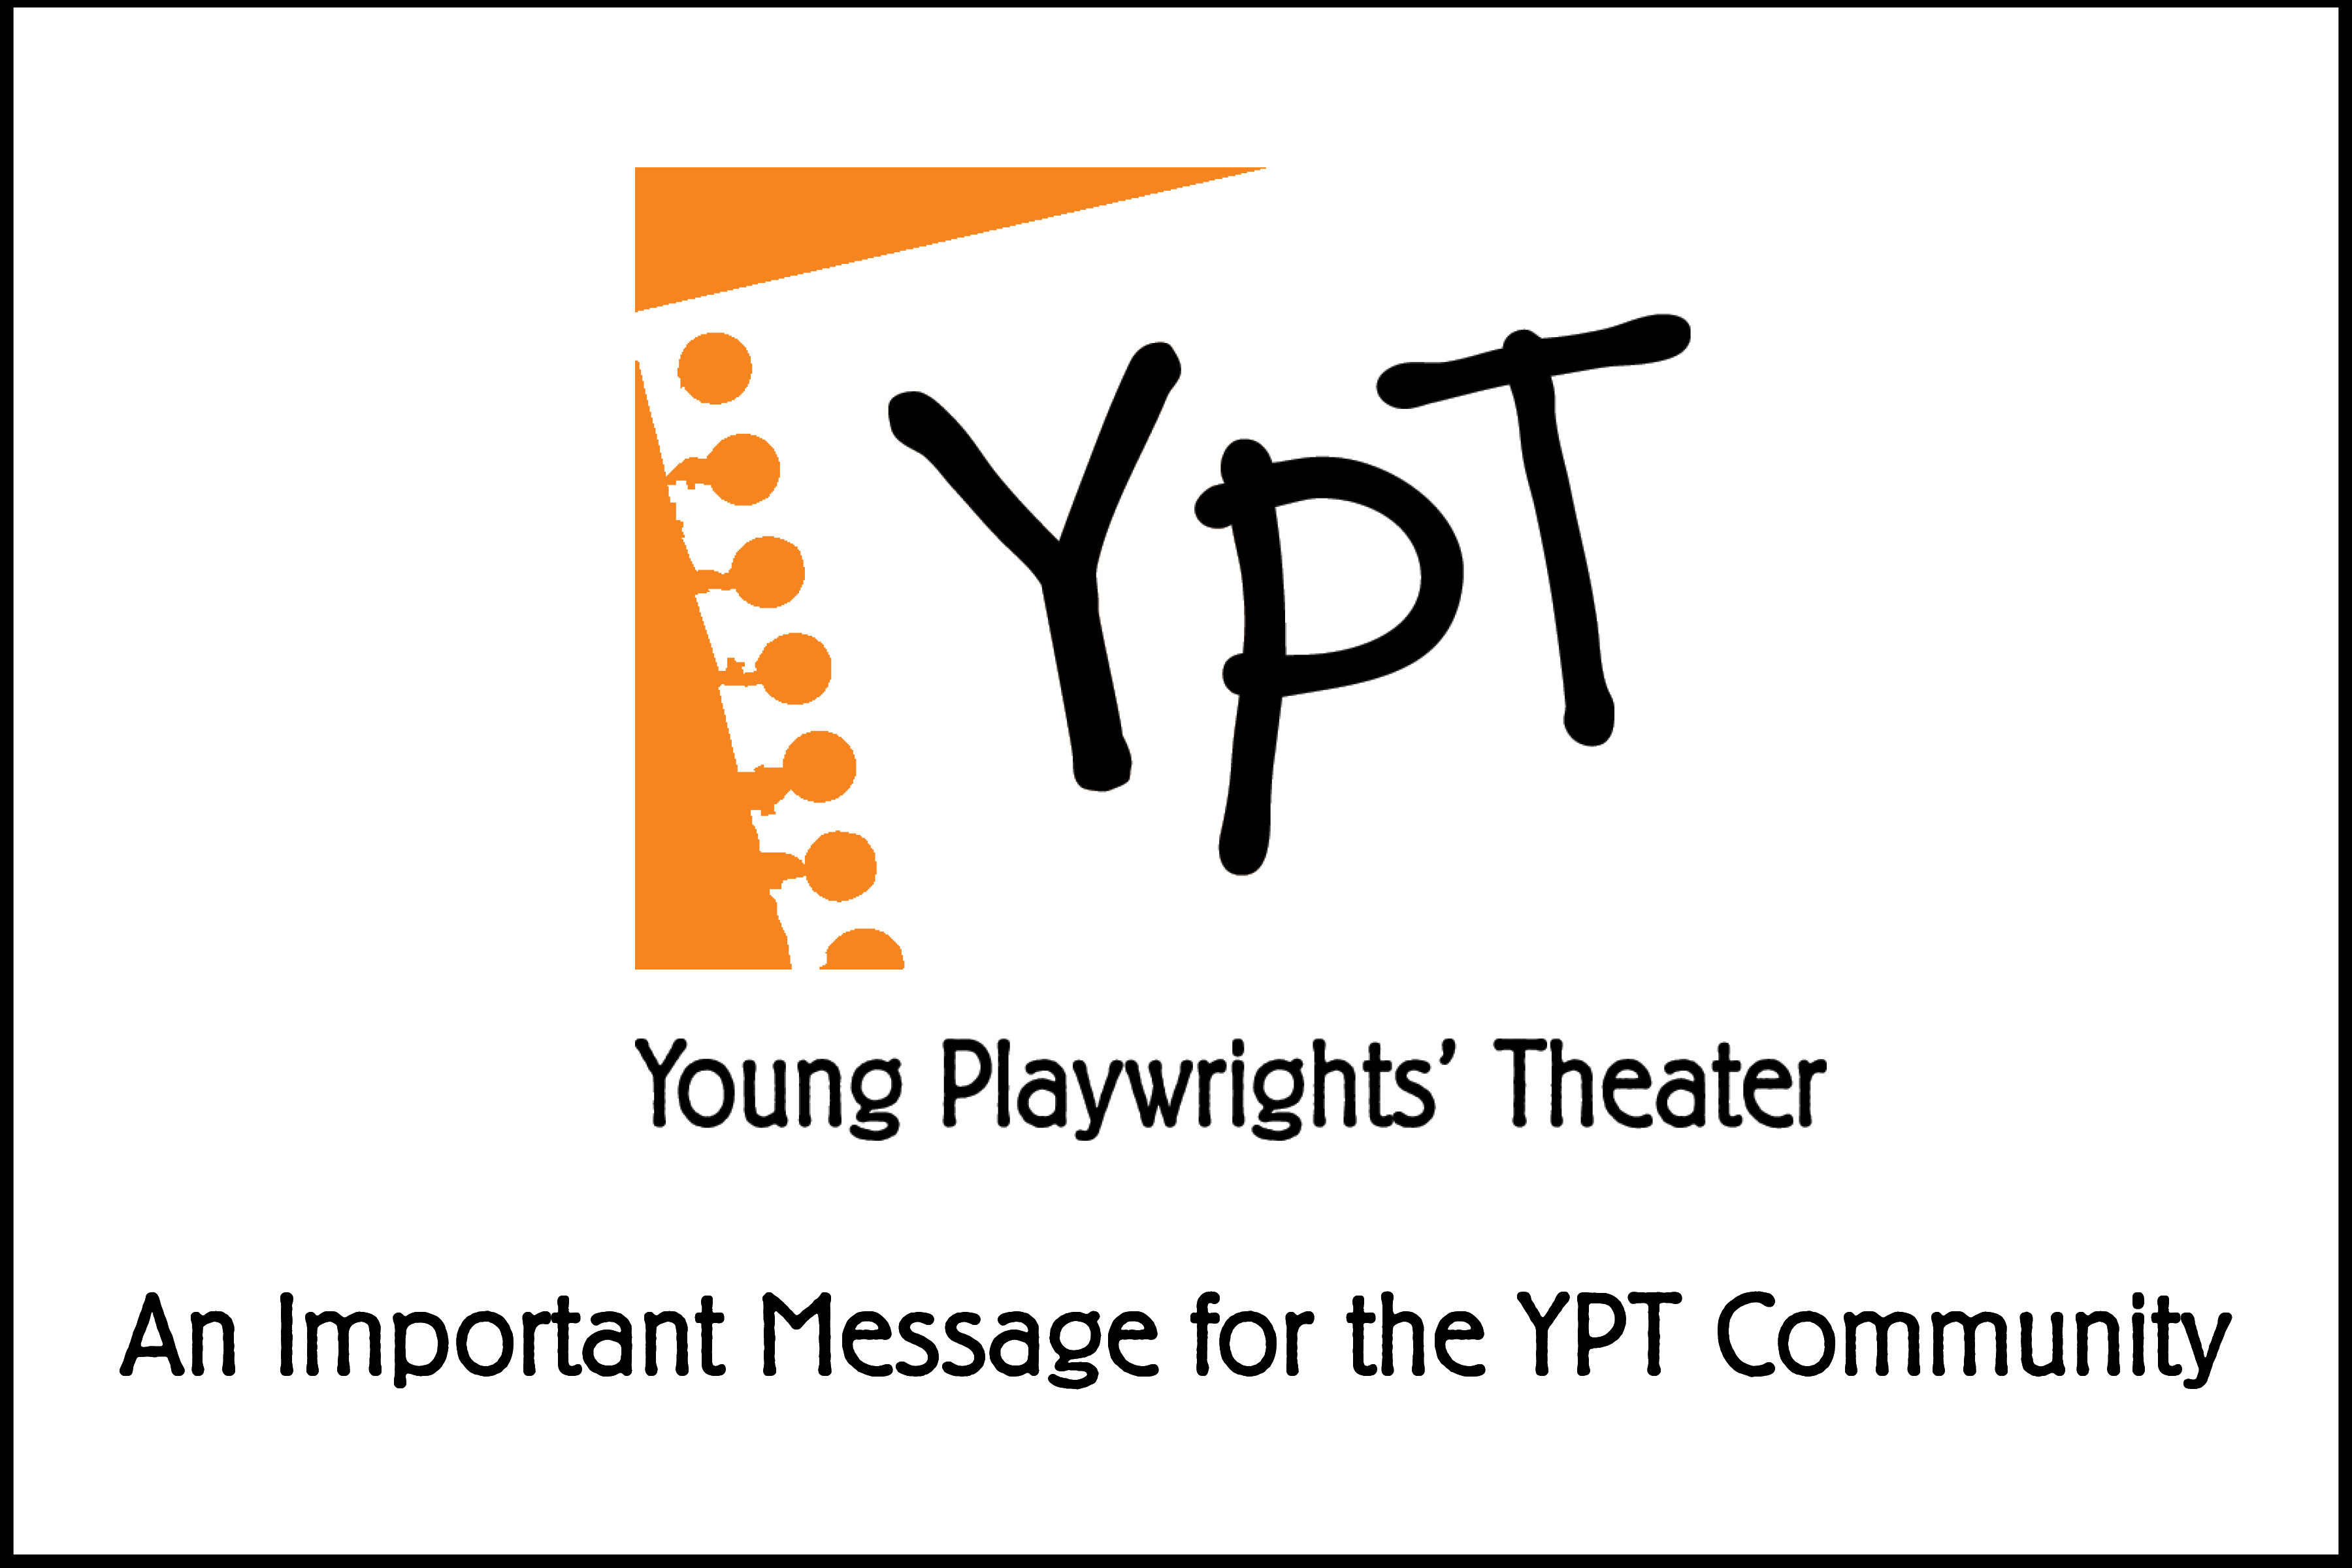 An Important Message for the YPT Community